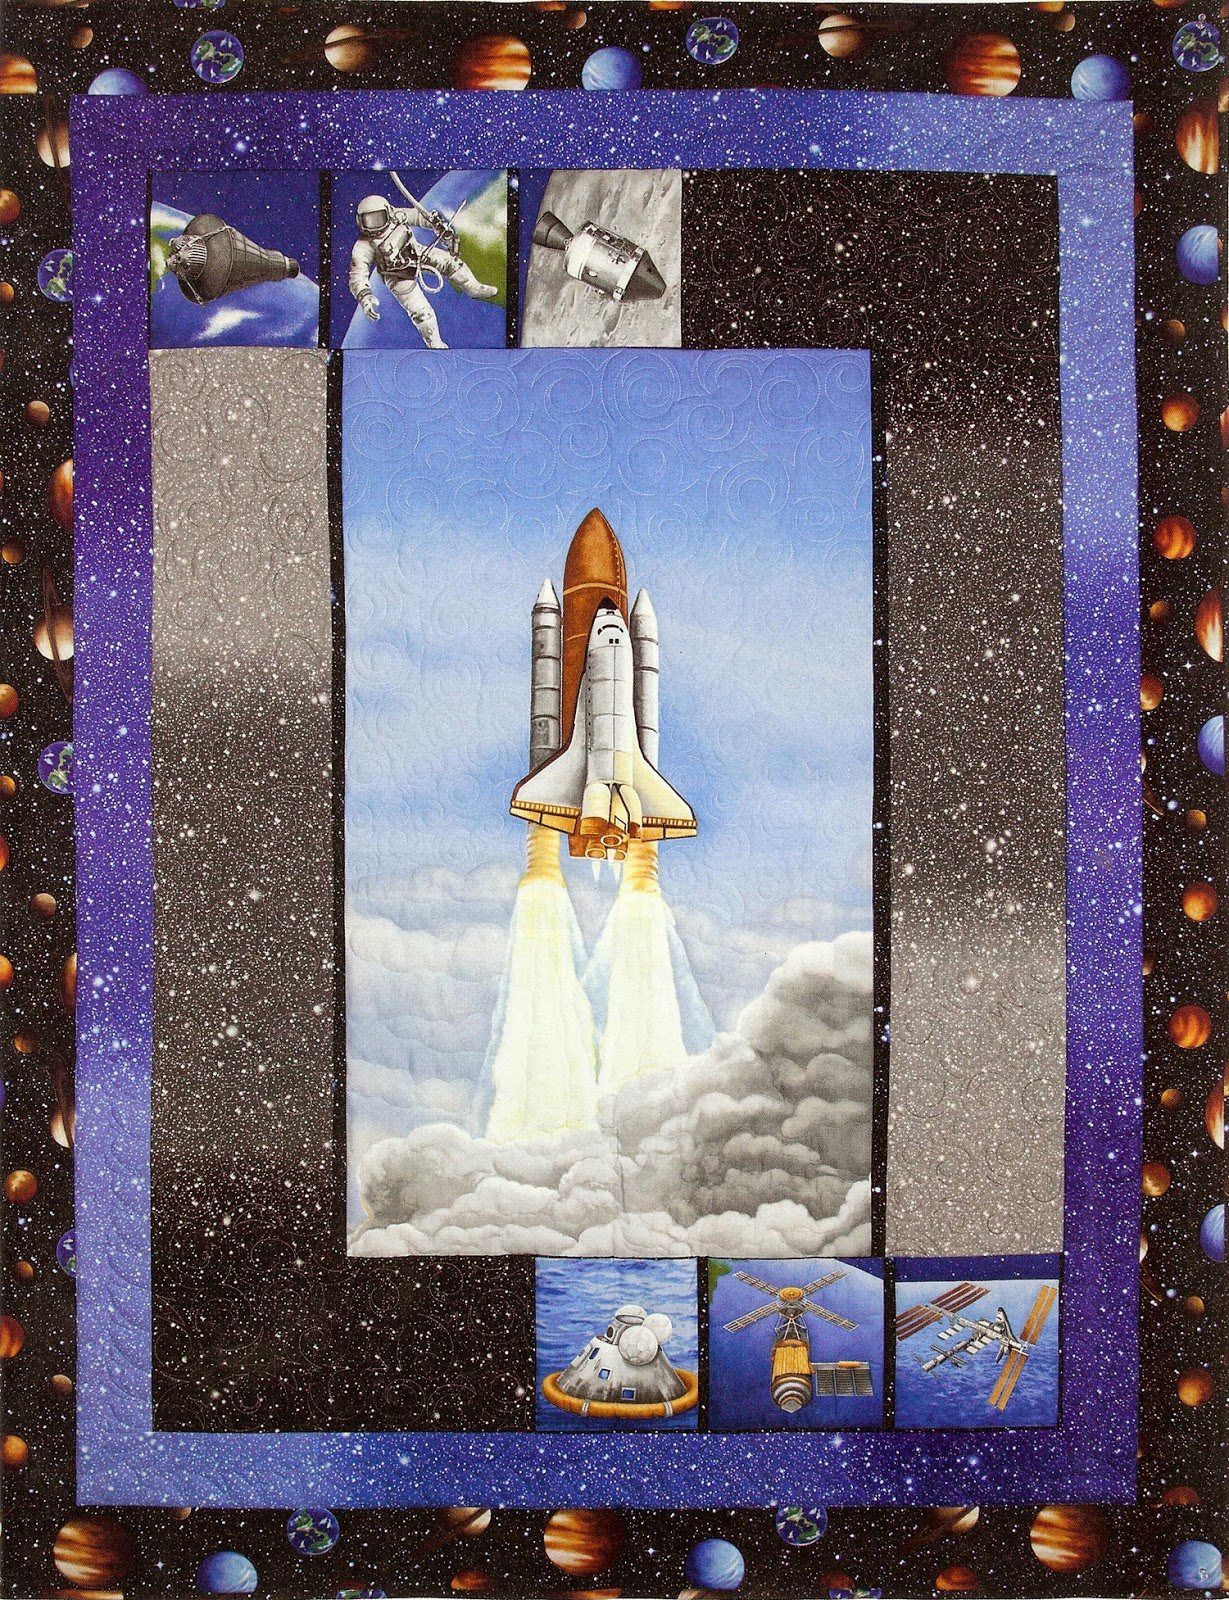 space shuttle quilt pattern - photo #41